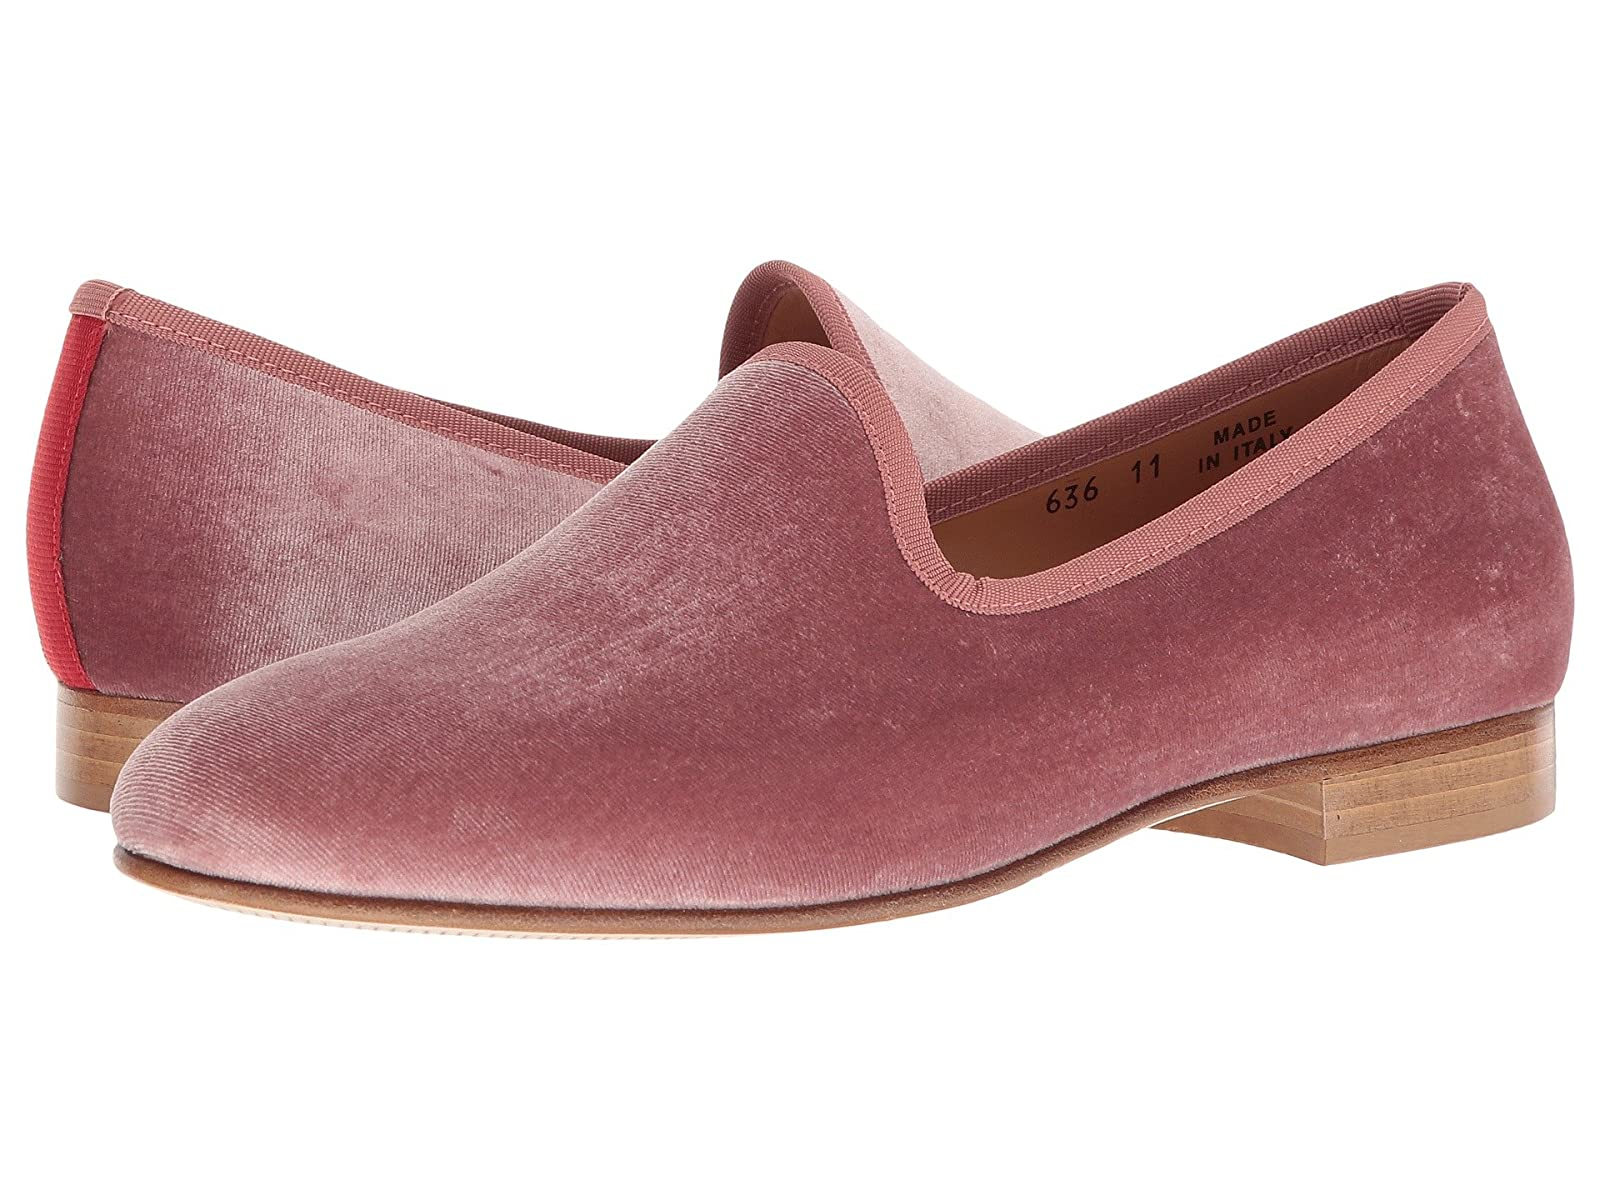 Del Toro Prince LoaferCheap and distinctive eye-catching shoes